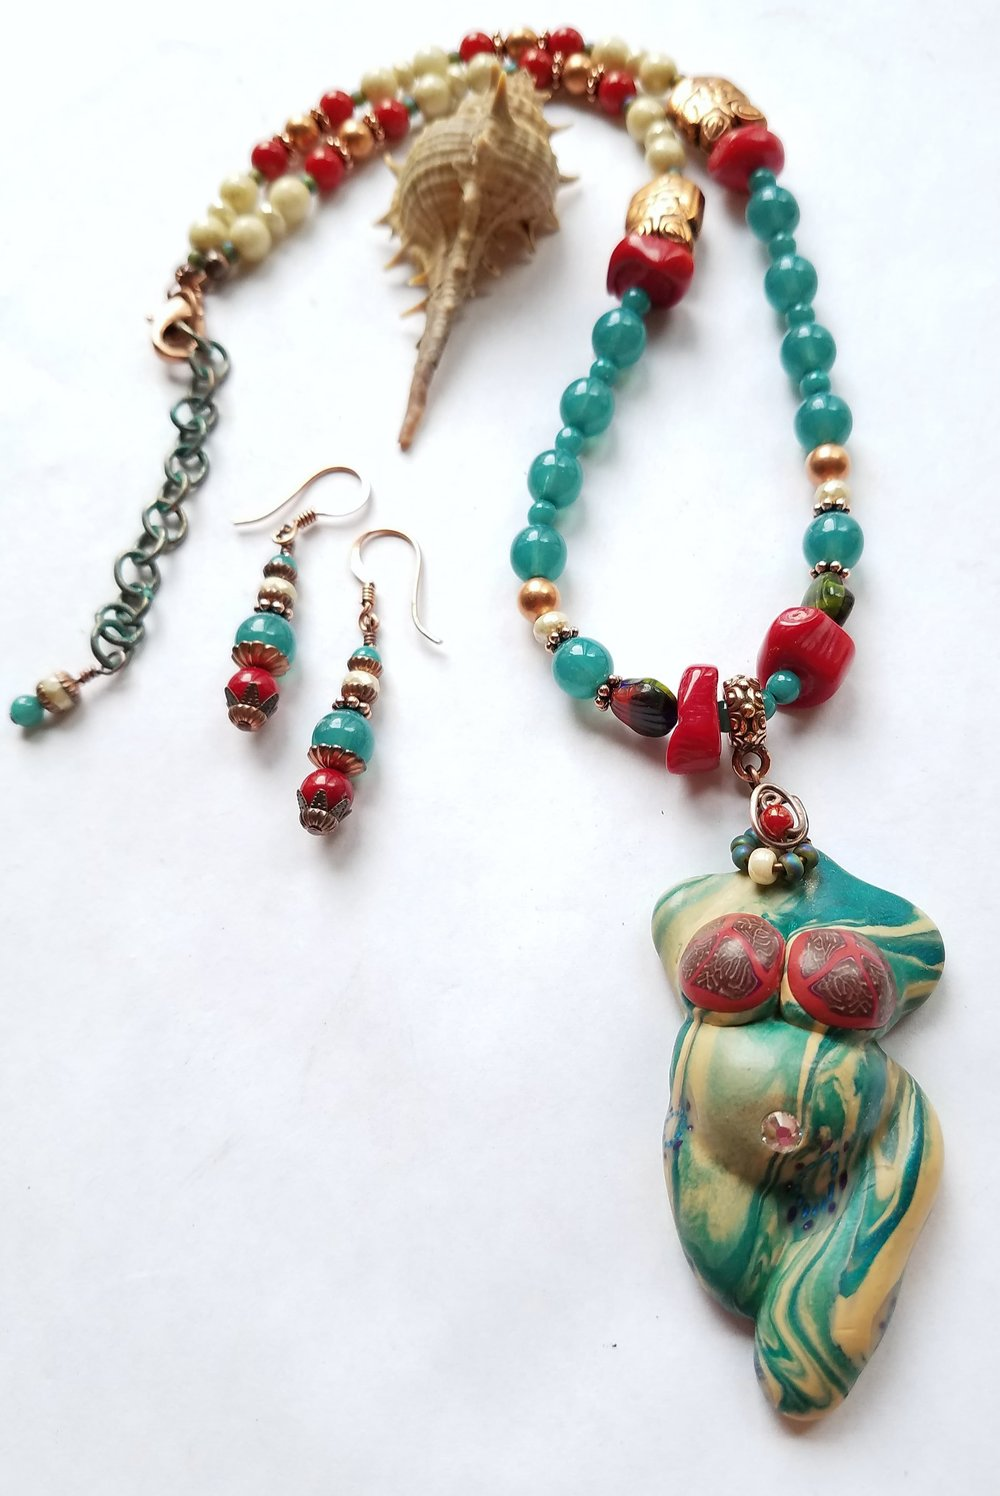 Goddess of Peaceful Seas necklace by Janet Steele Rainey